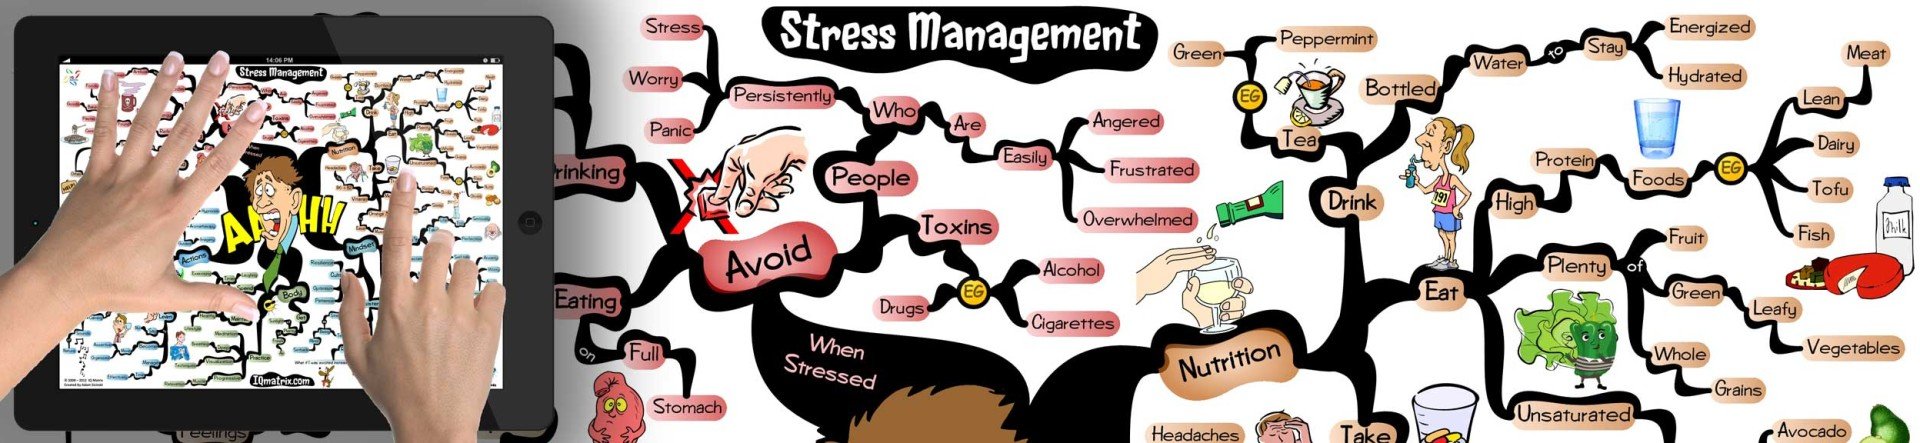 practical ideas to help you manage your stress levels